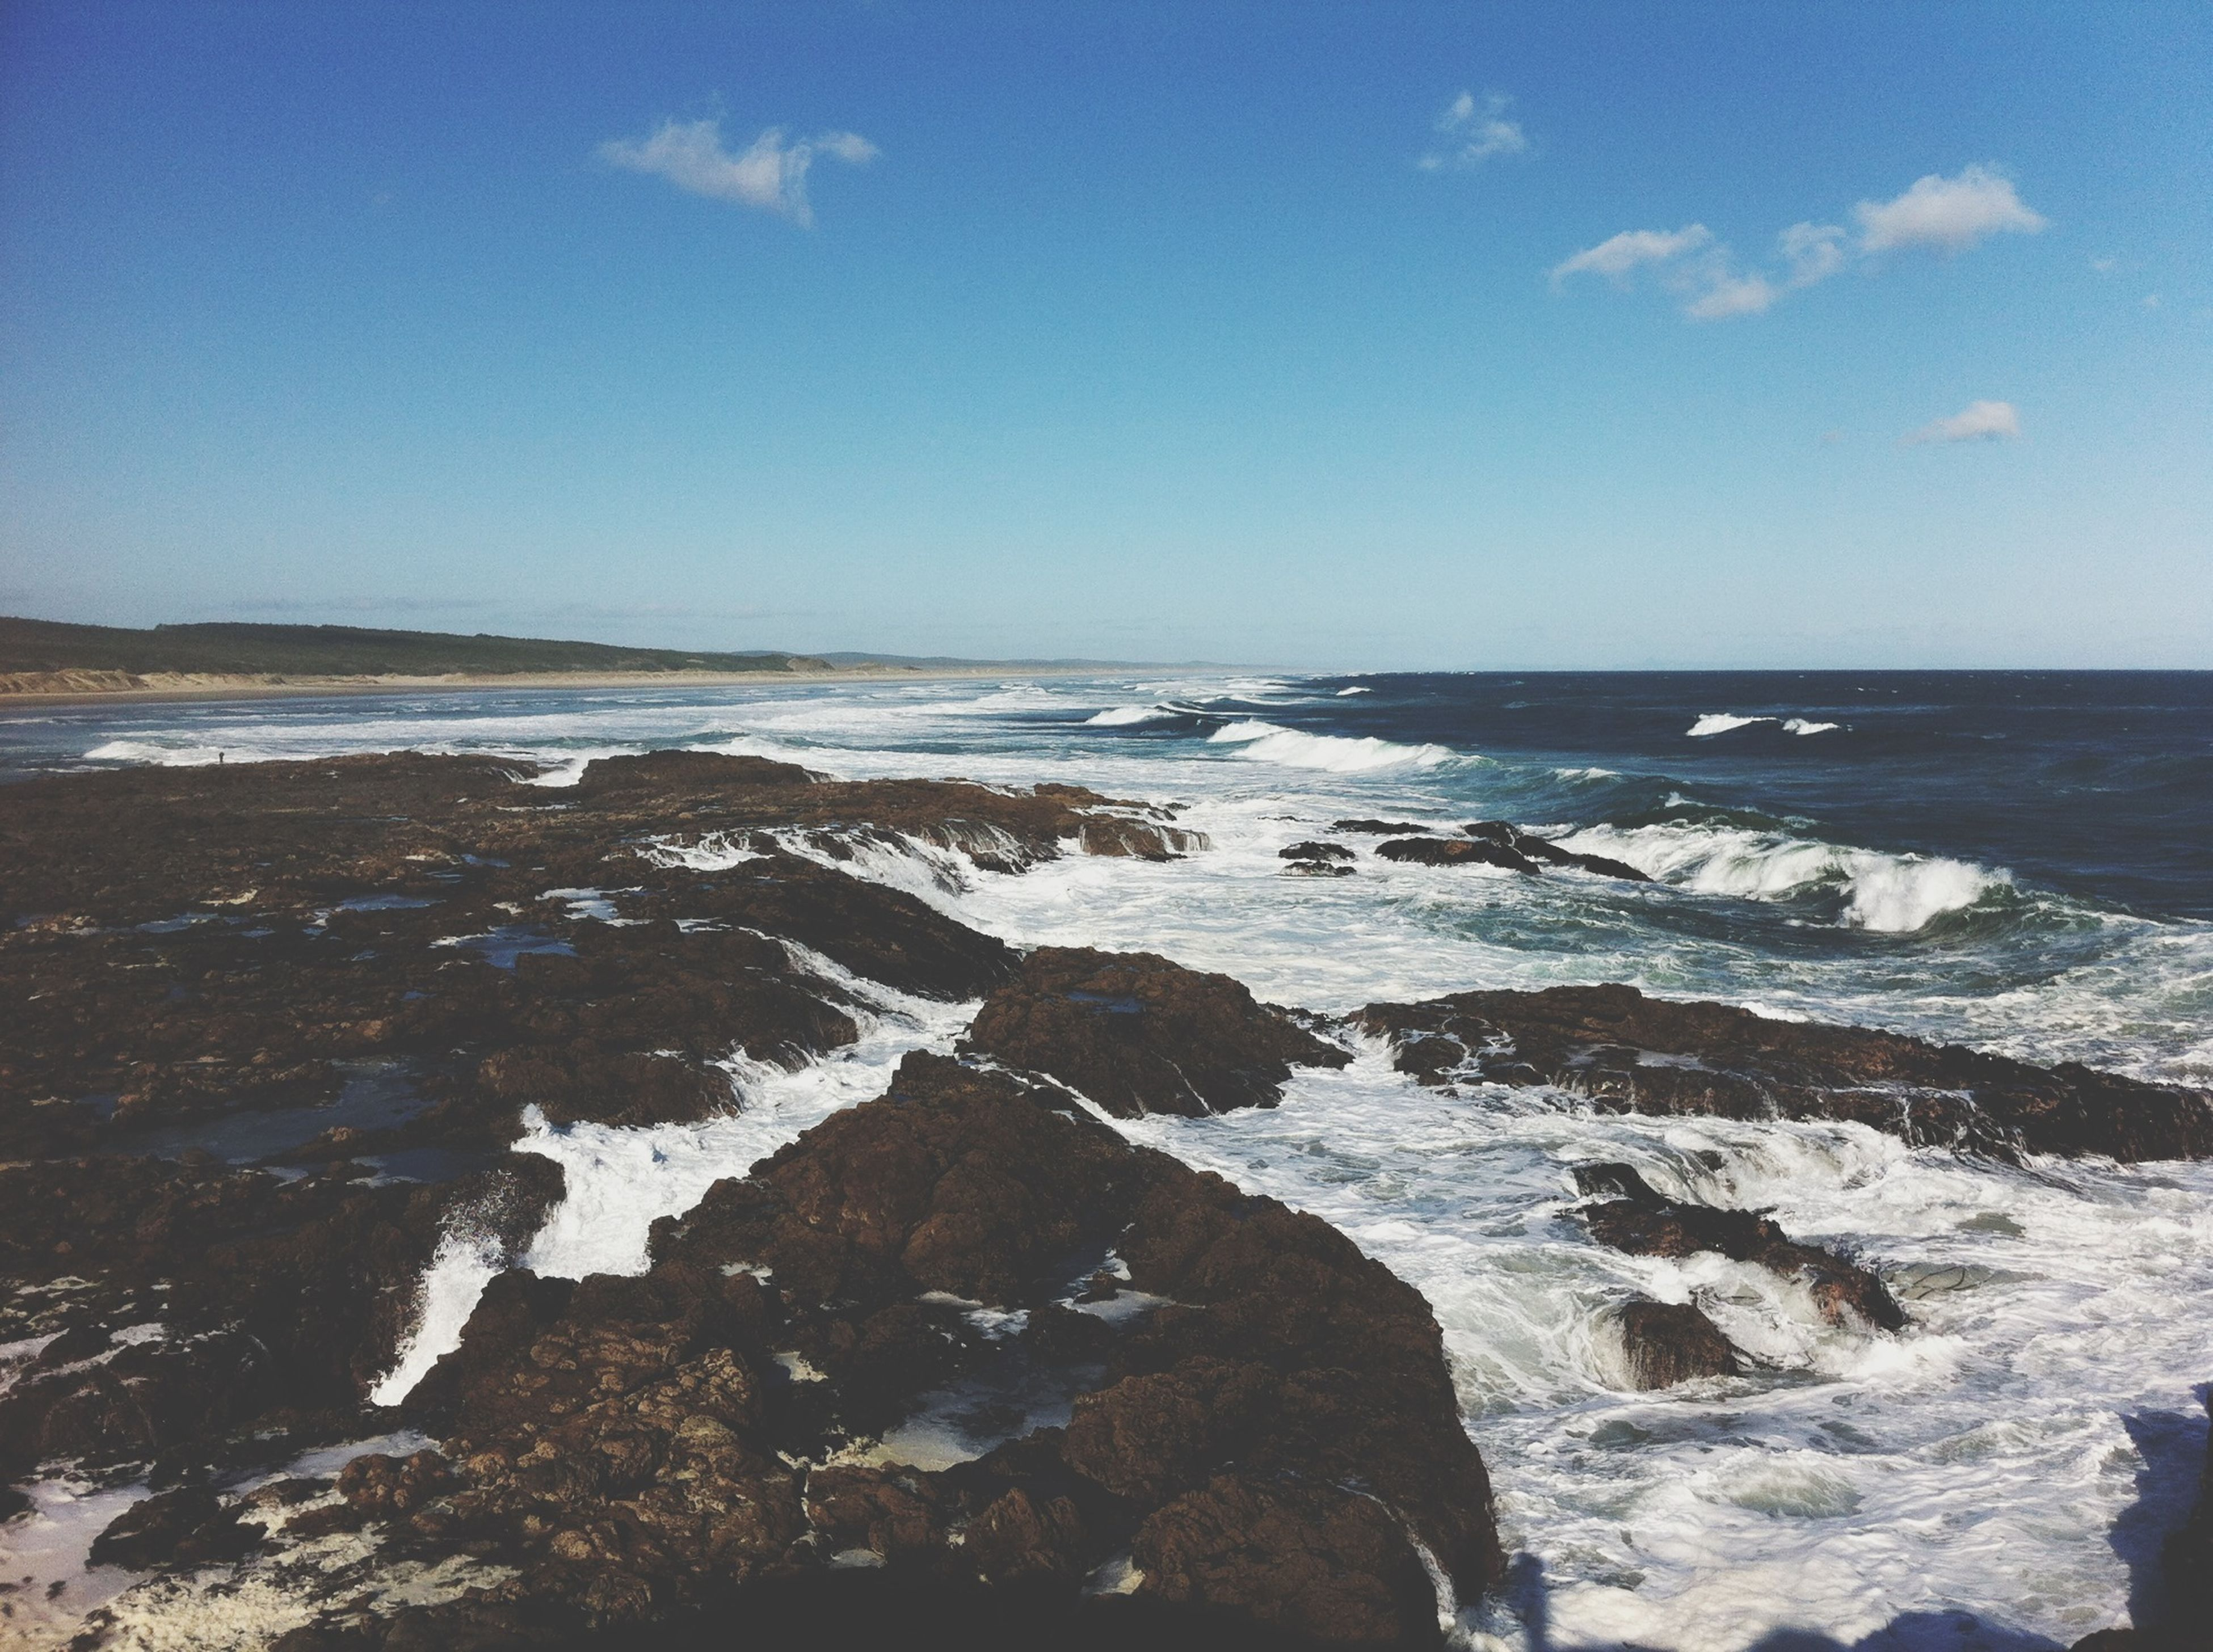 sea, water, horizon over water, beach, scenics, wave, tranquil scene, sky, beauty in nature, shore, tranquility, nature, surf, rock - object, idyllic, blue, outdoors, coastline, no people, day